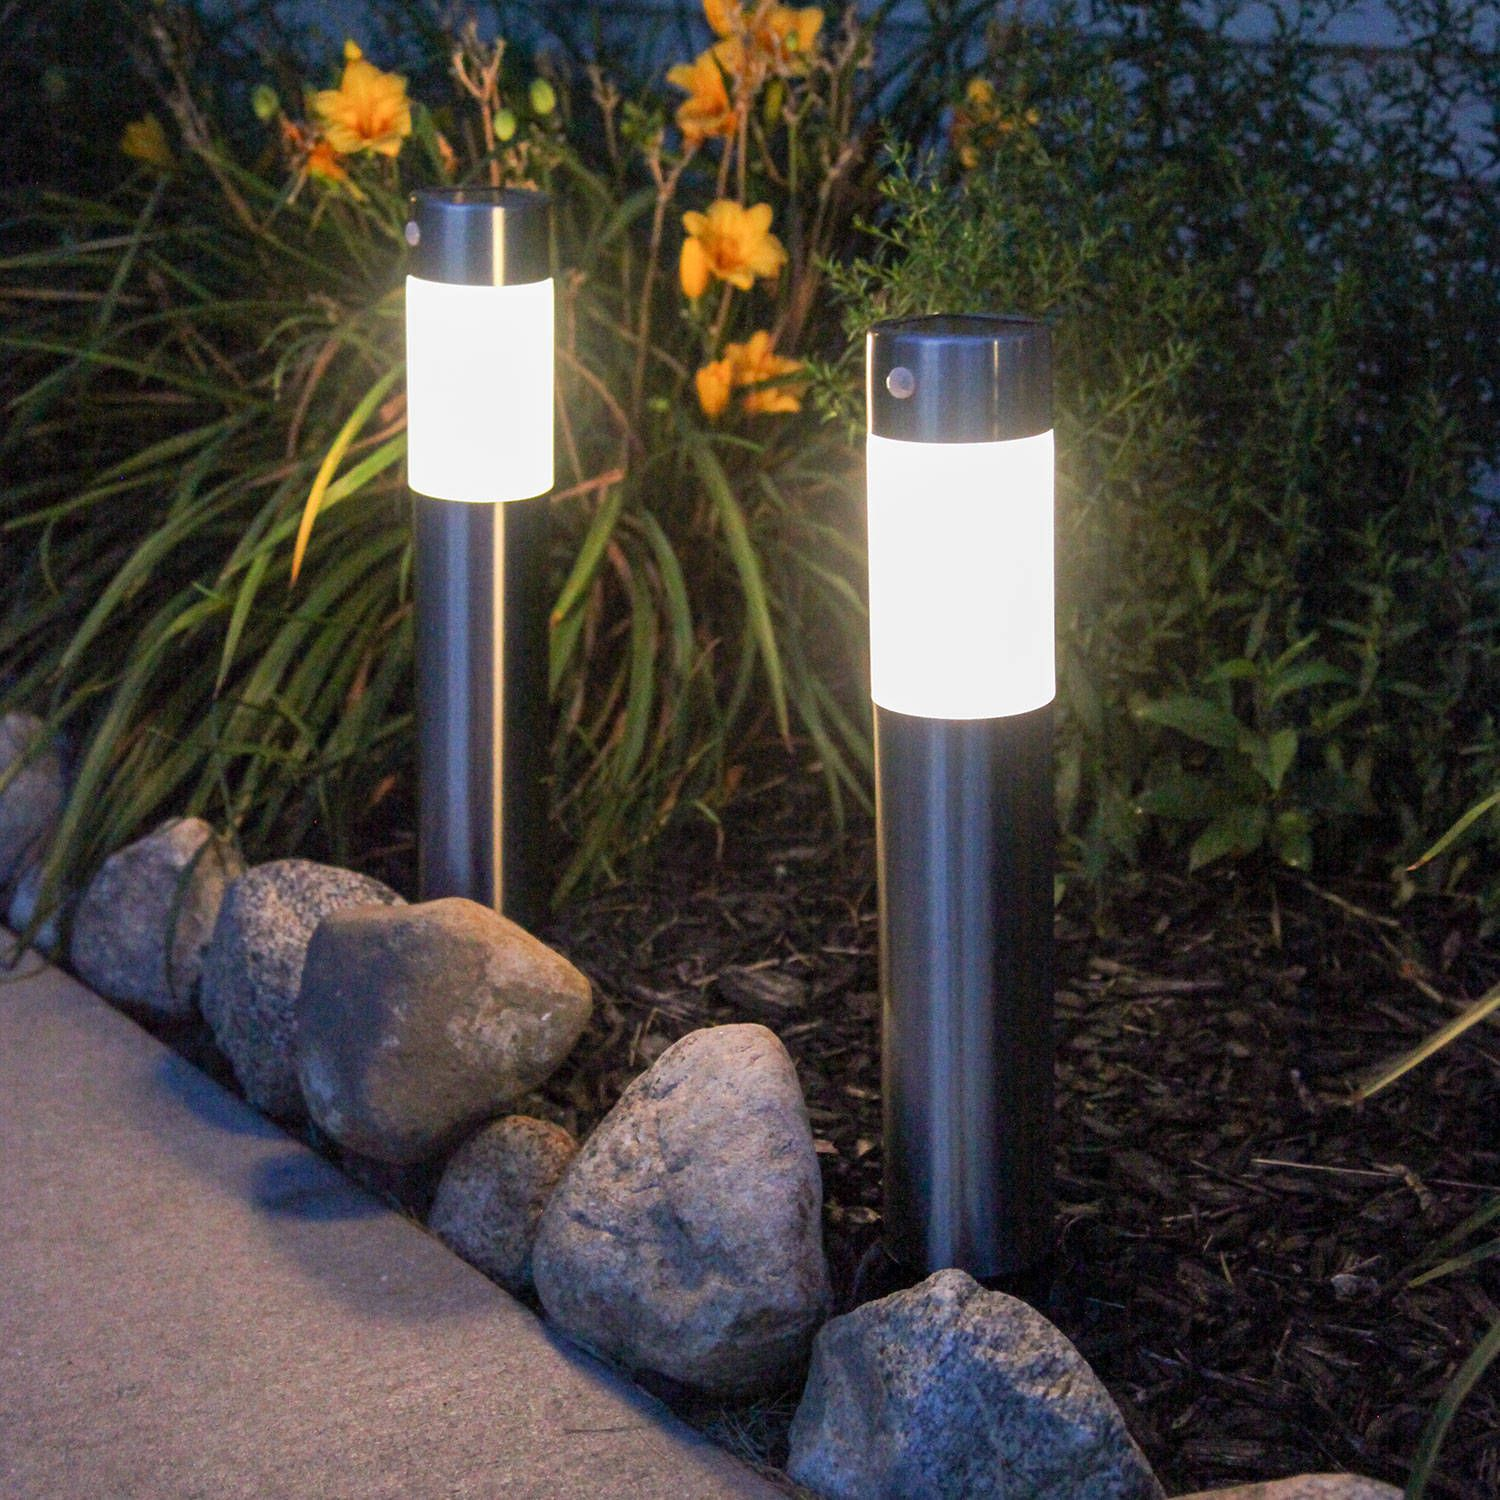 Frosted Warm White Stainless Steel Solar Garden Columns Set Of 2 Solar Lights Garden Solar Powered Garden Lights Solar Landscape Lighting